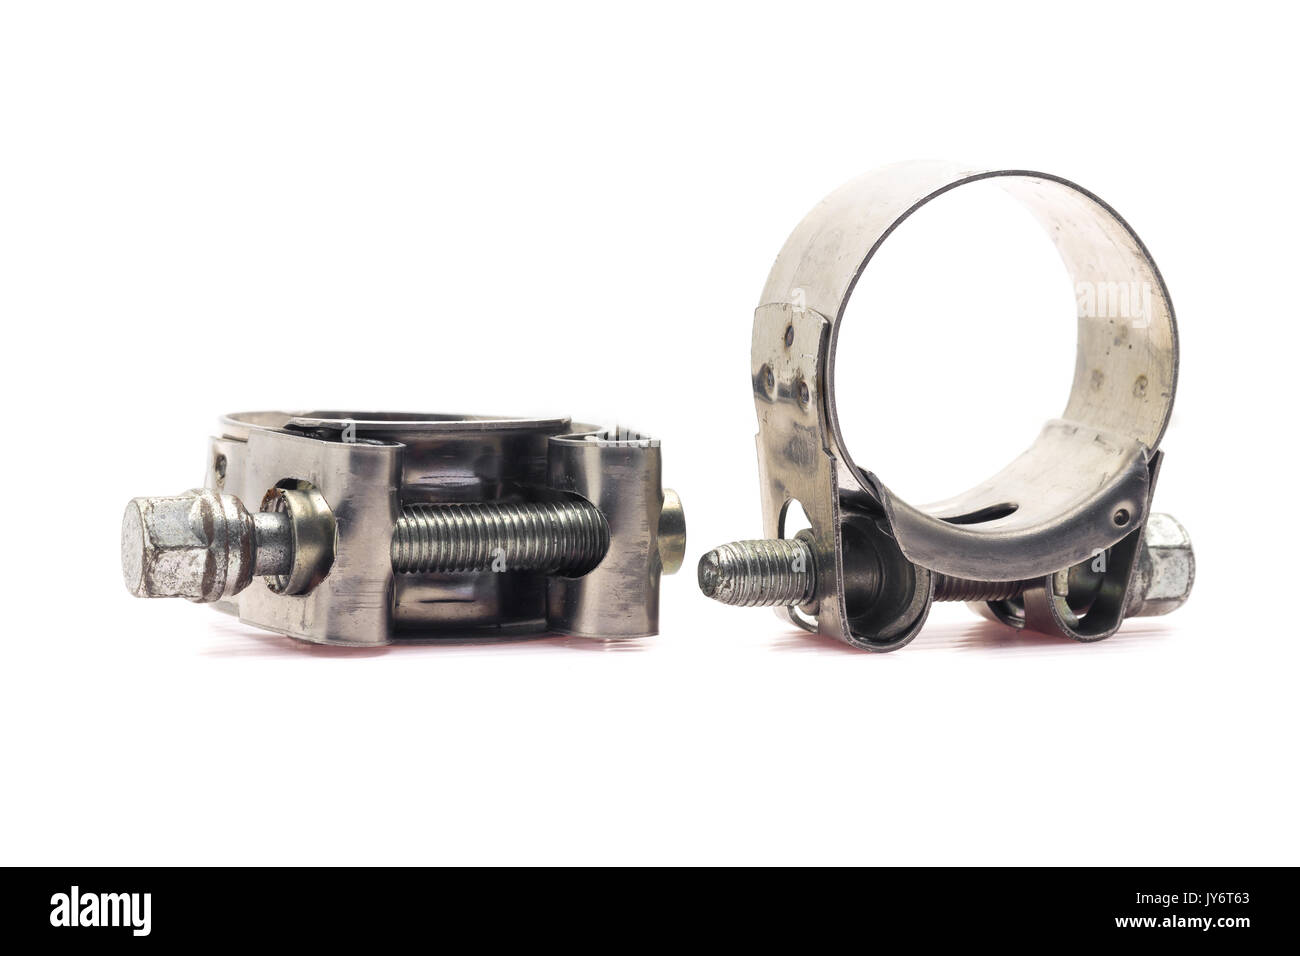 Close up a big hose cl& on white background.  sc 1 st  Alamy & Close up a big hose clamp on white background Stock Photo: 154429355 ...